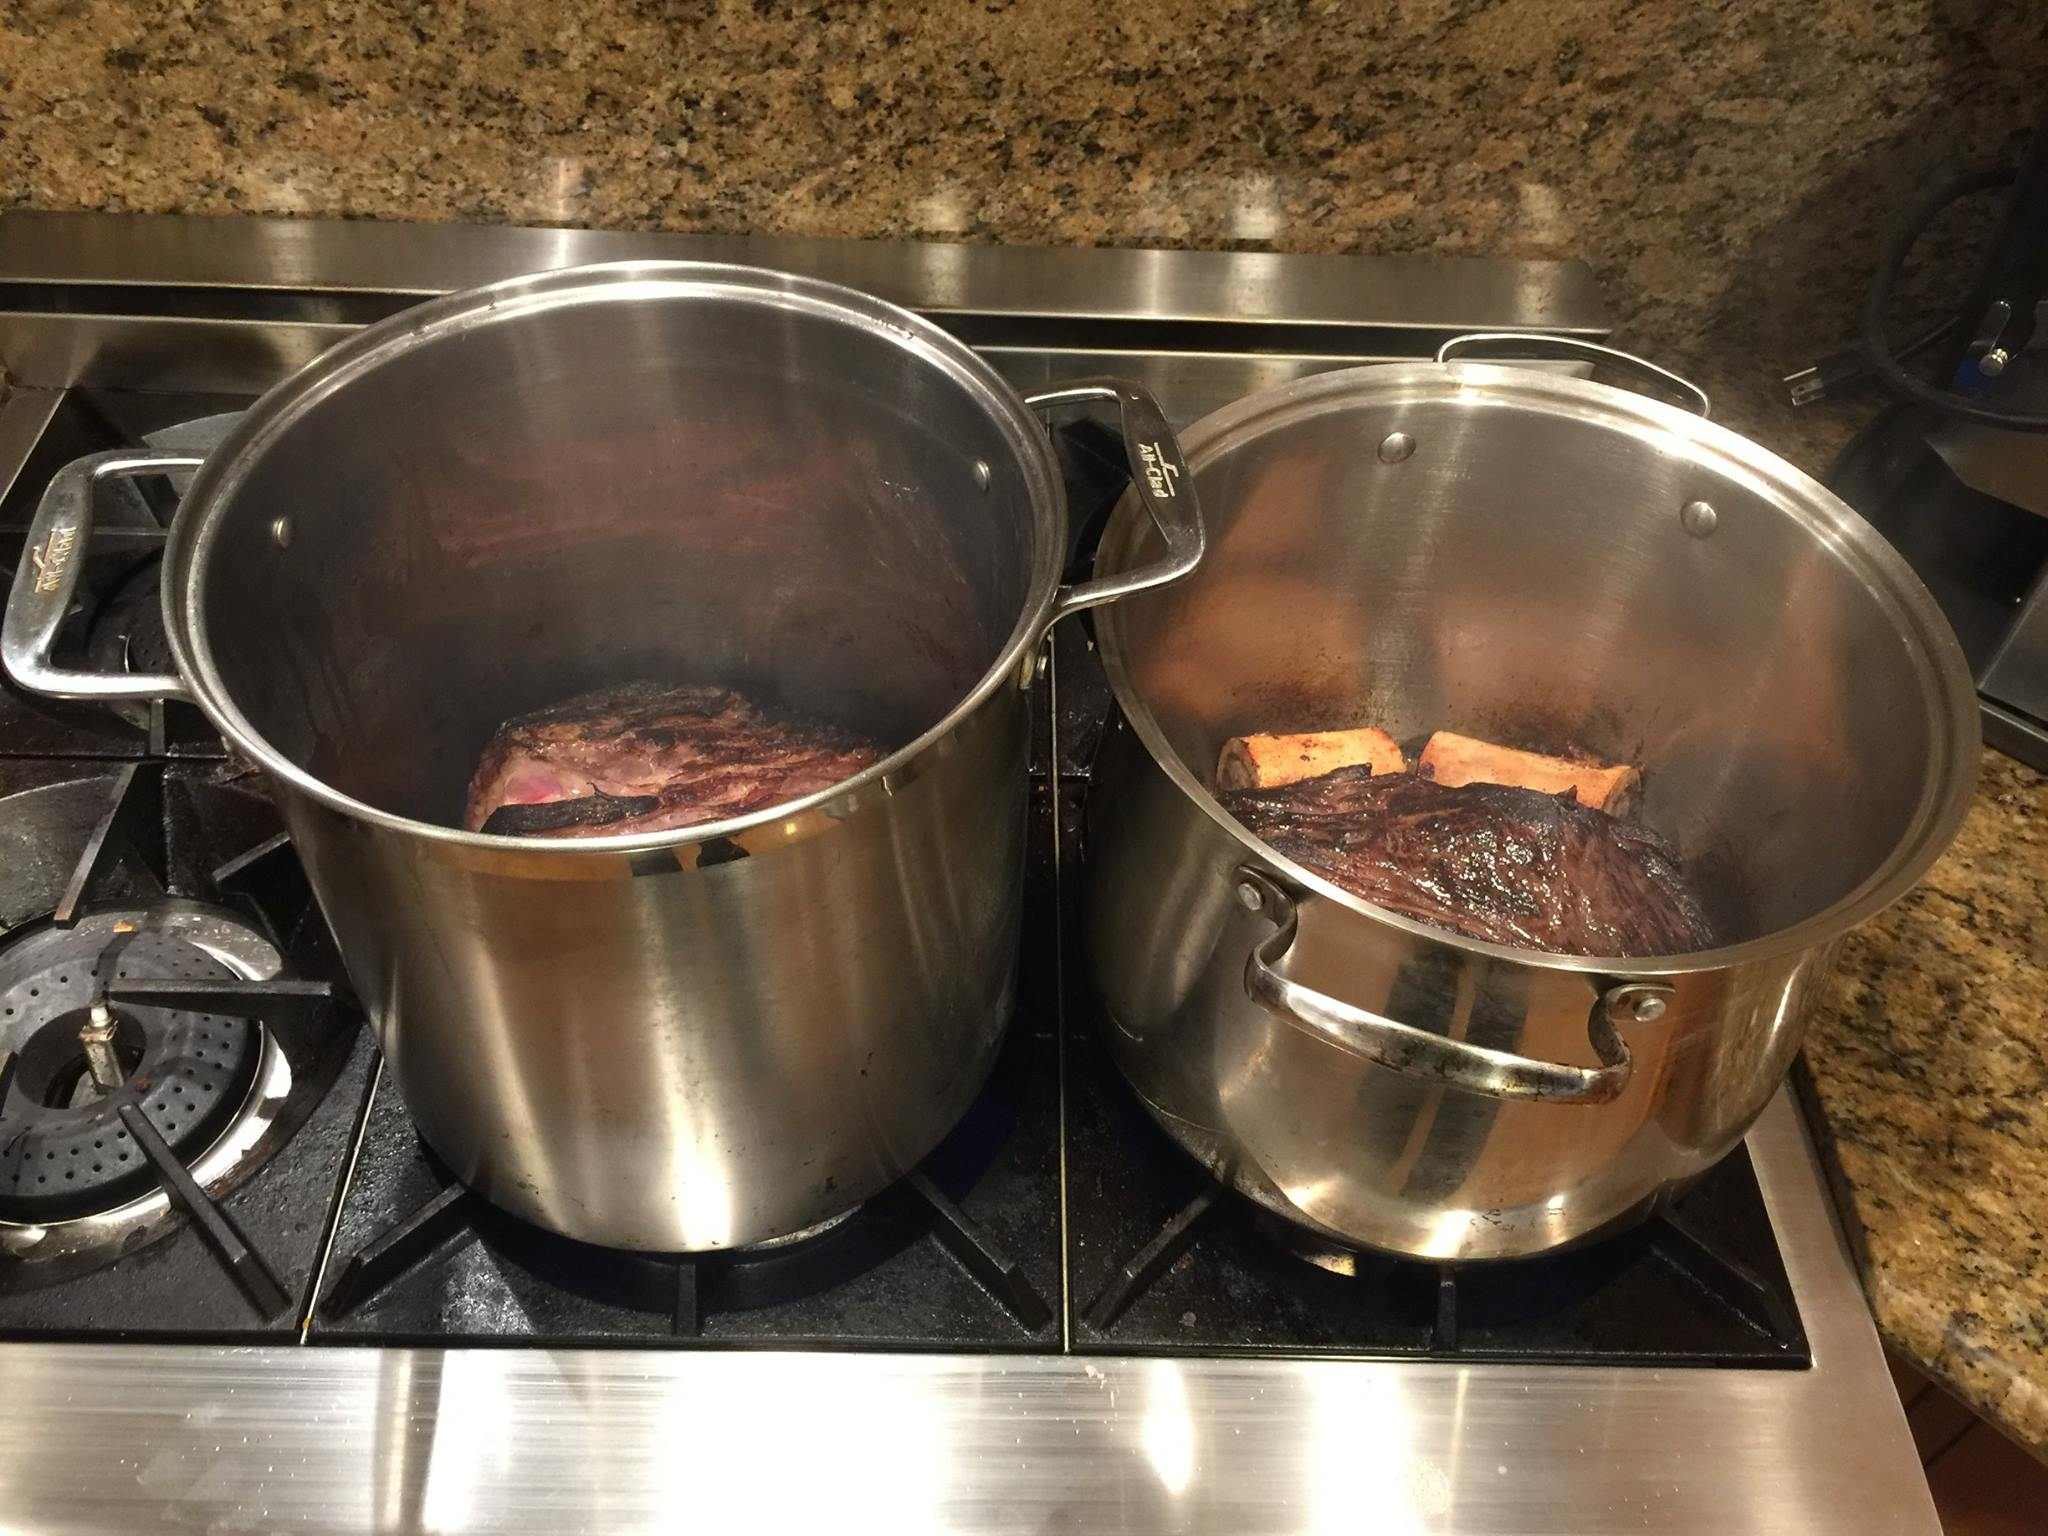 20 pounds of sauerbraten in the making (part 2)